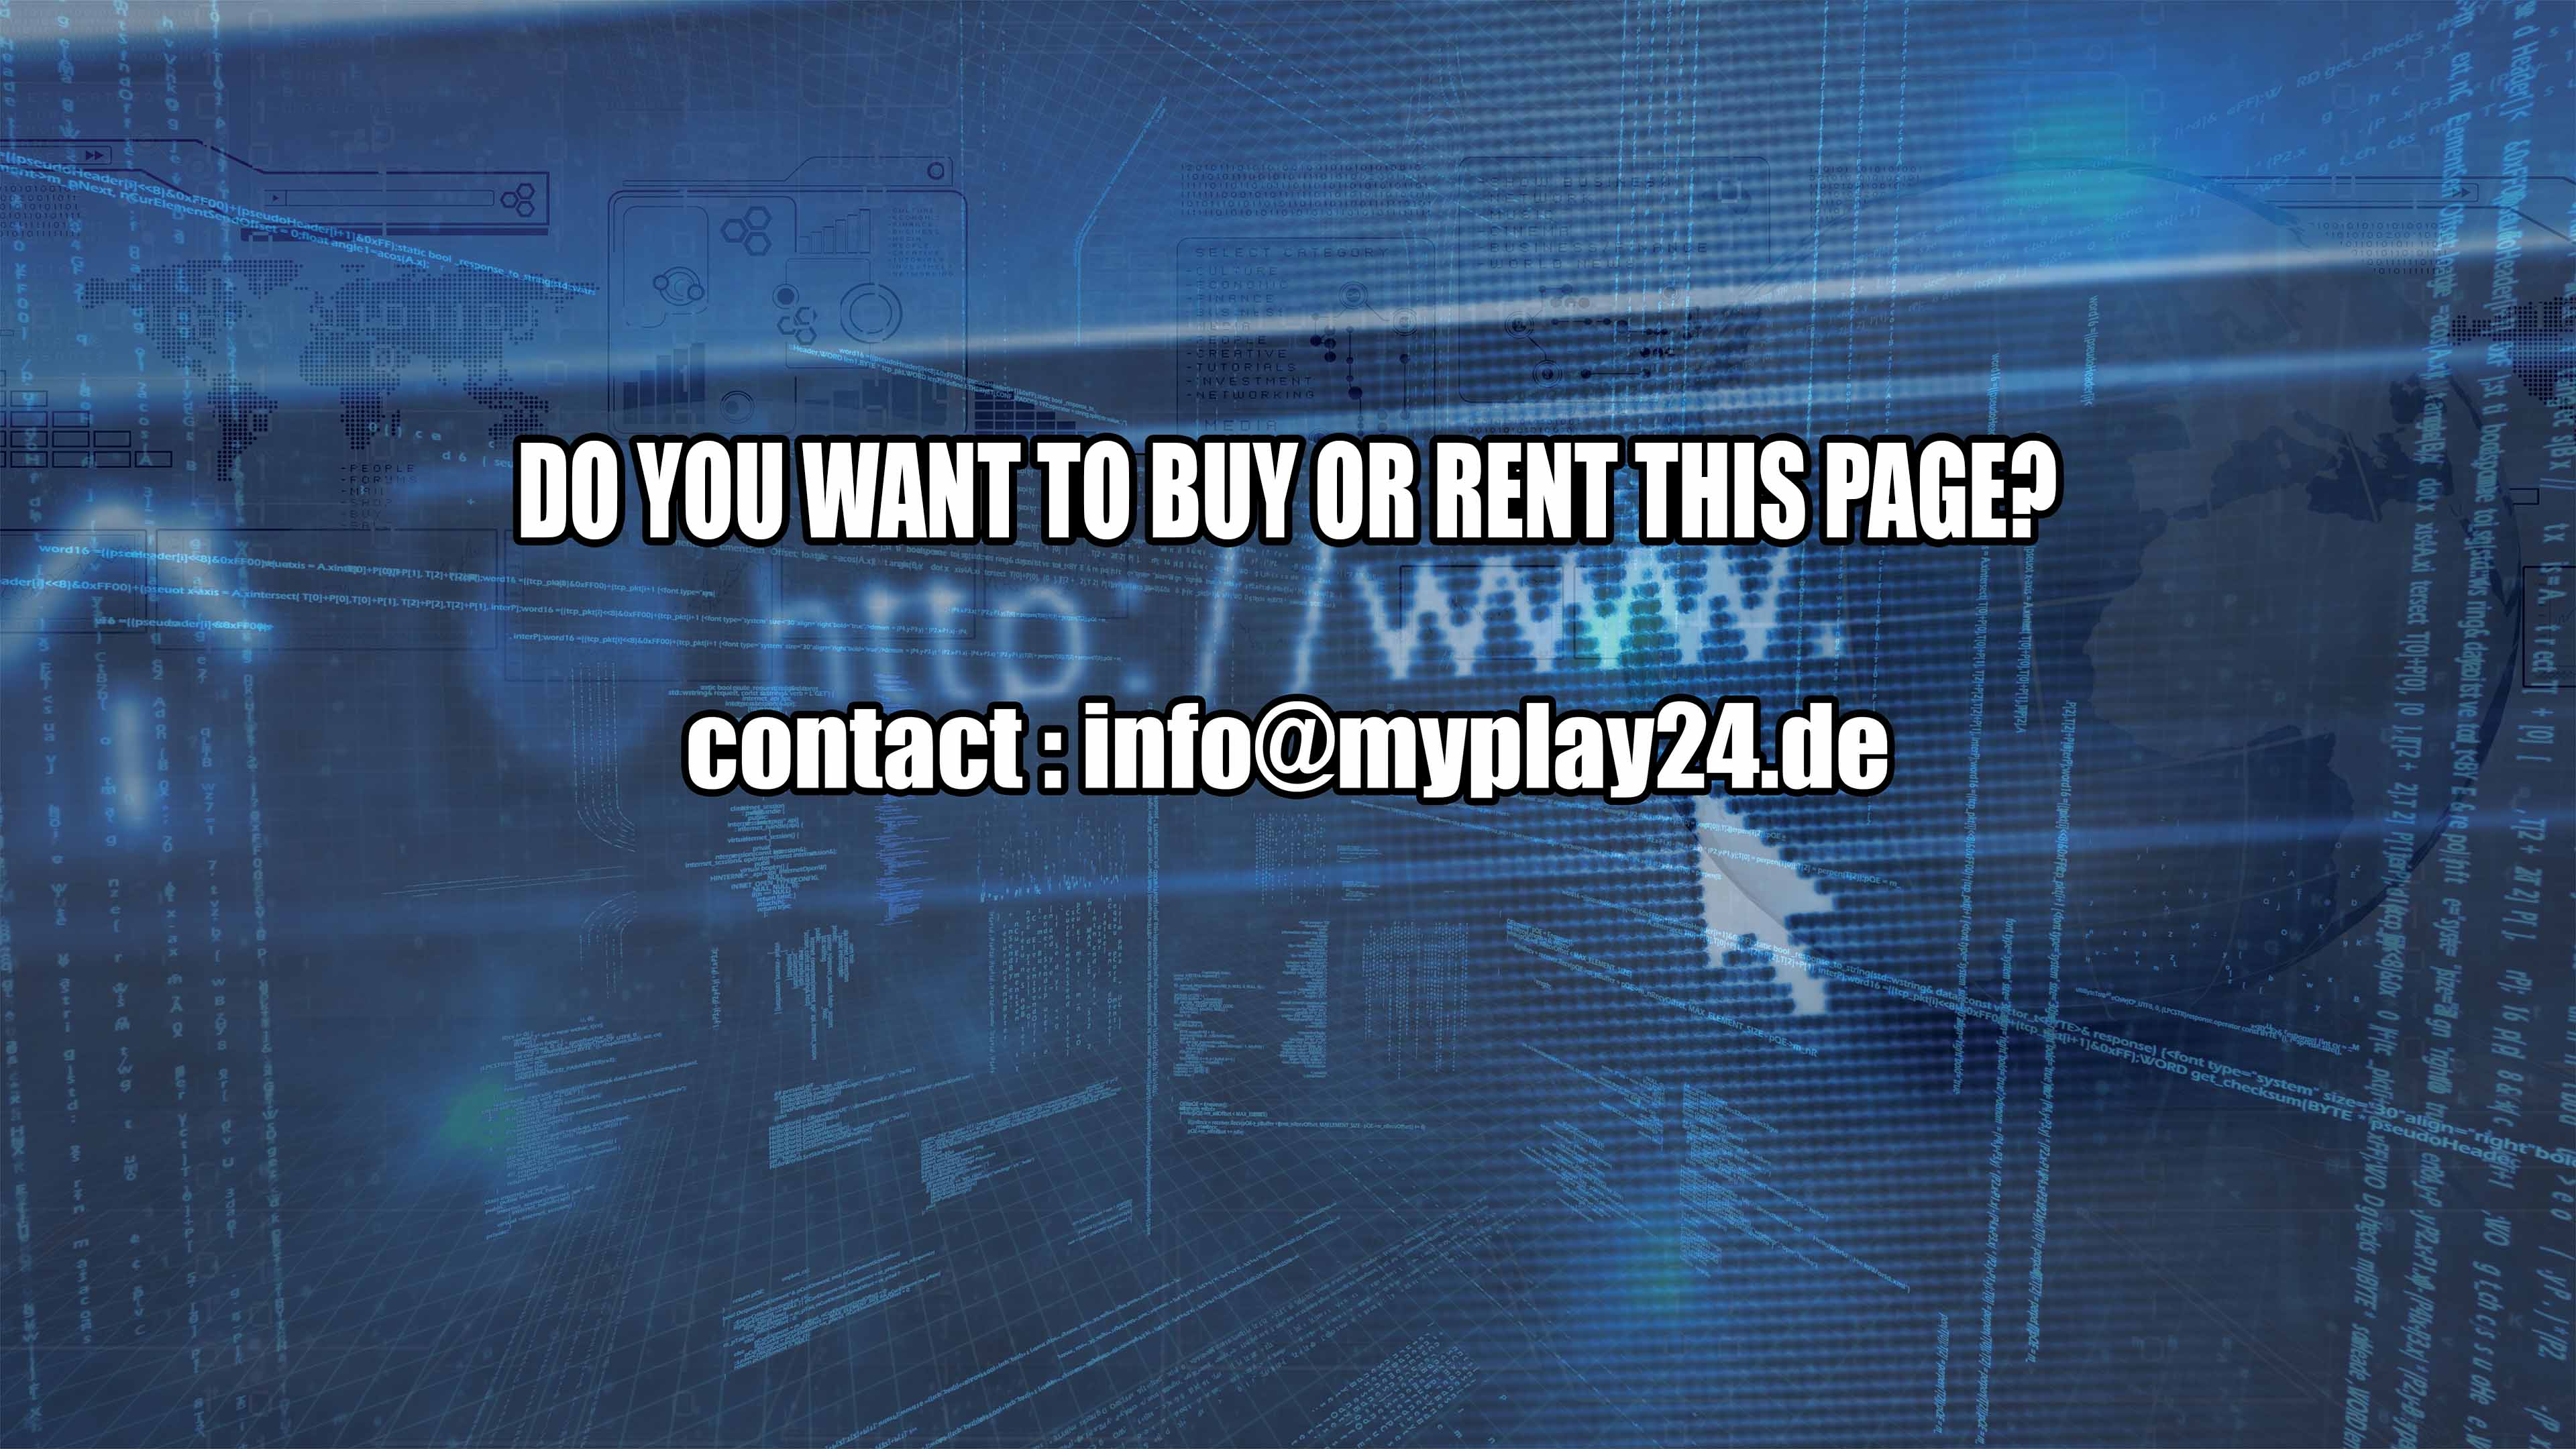 Do you want to buy or rent this page?